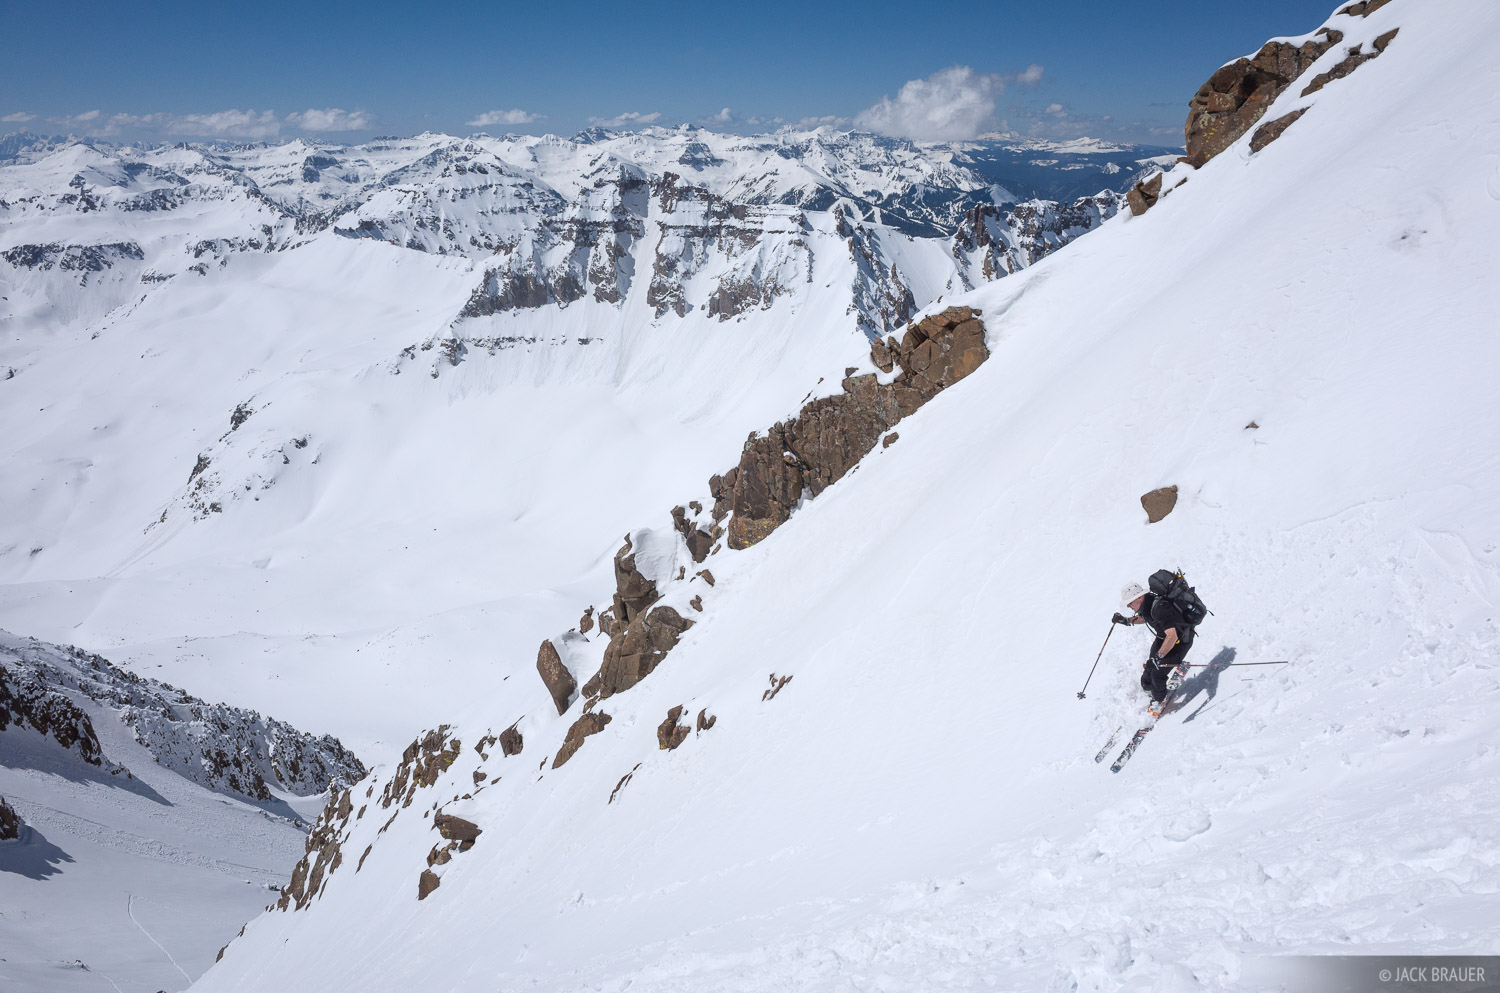 Colorado,Mt. Sneffels,San Juan Mountains,Sneffels Range, skiing, photo